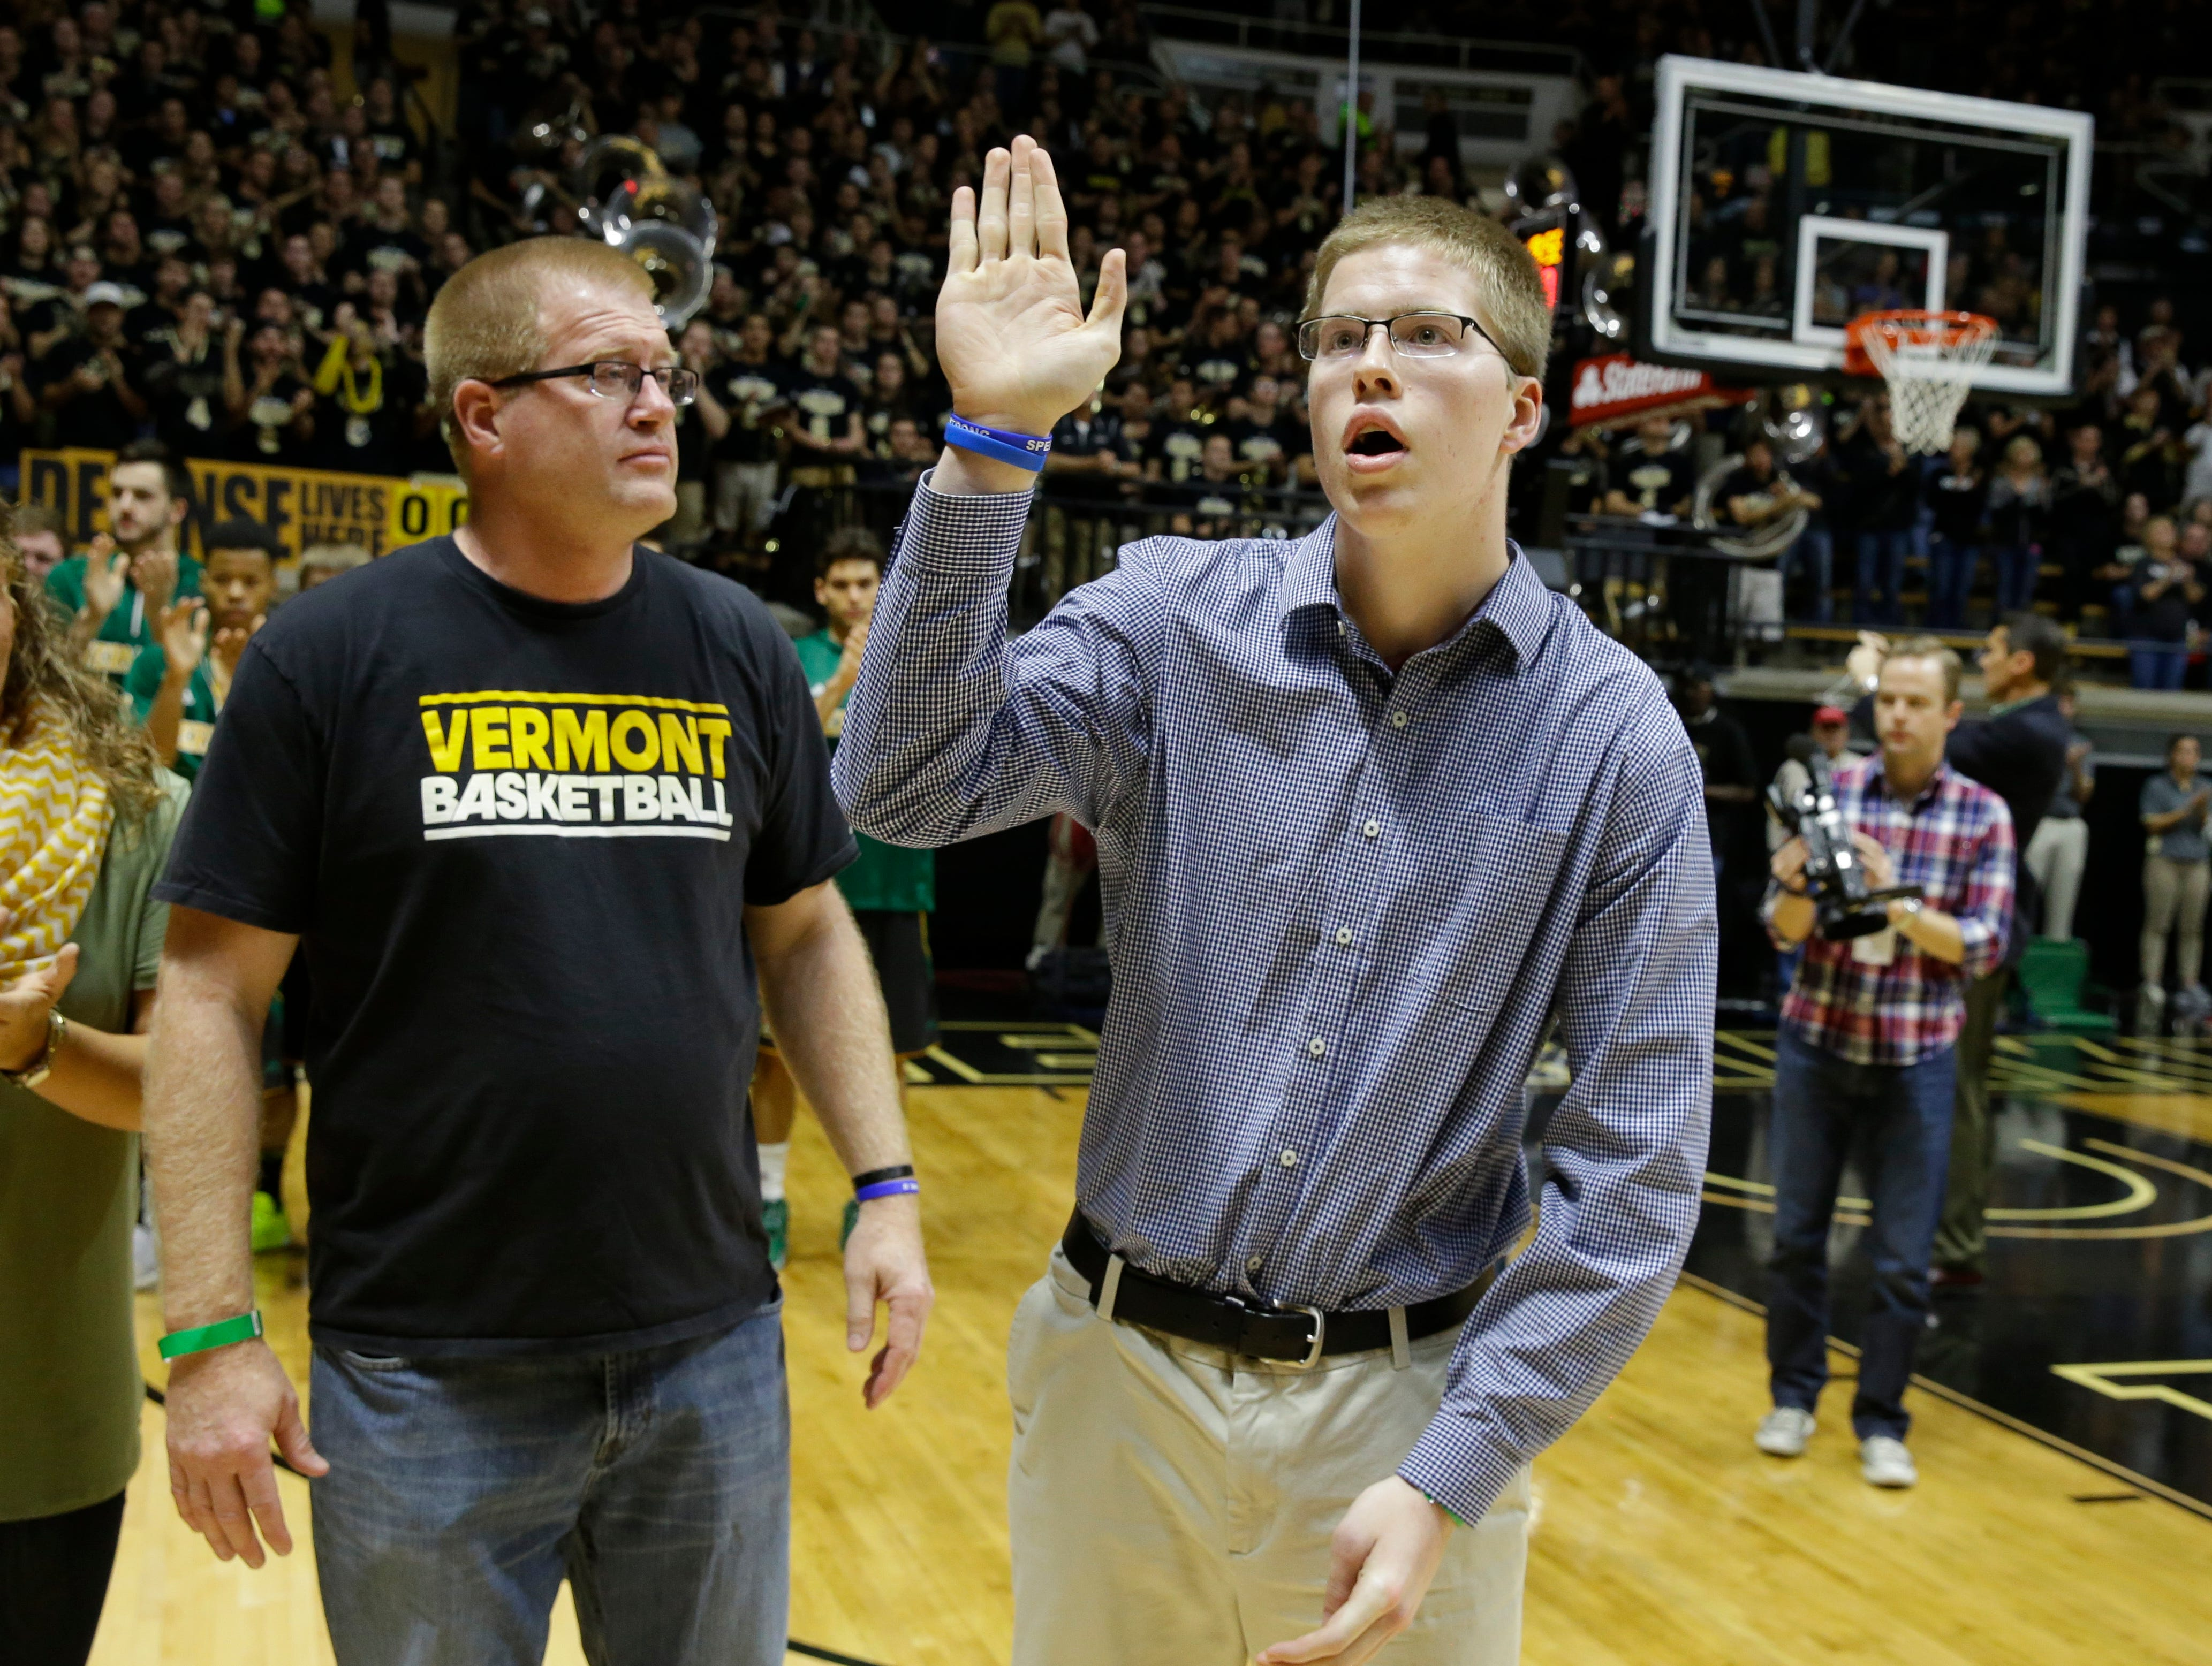 Dave Speidel, left, watches as he son Josh Speidel, right, is introduced with the Vermont players before a game against Purdue in West Lafayette, Nov. 15, 2015. Speidel is recovering from a Feb. 1 auto accident that resulted in a traumatic brain injury.